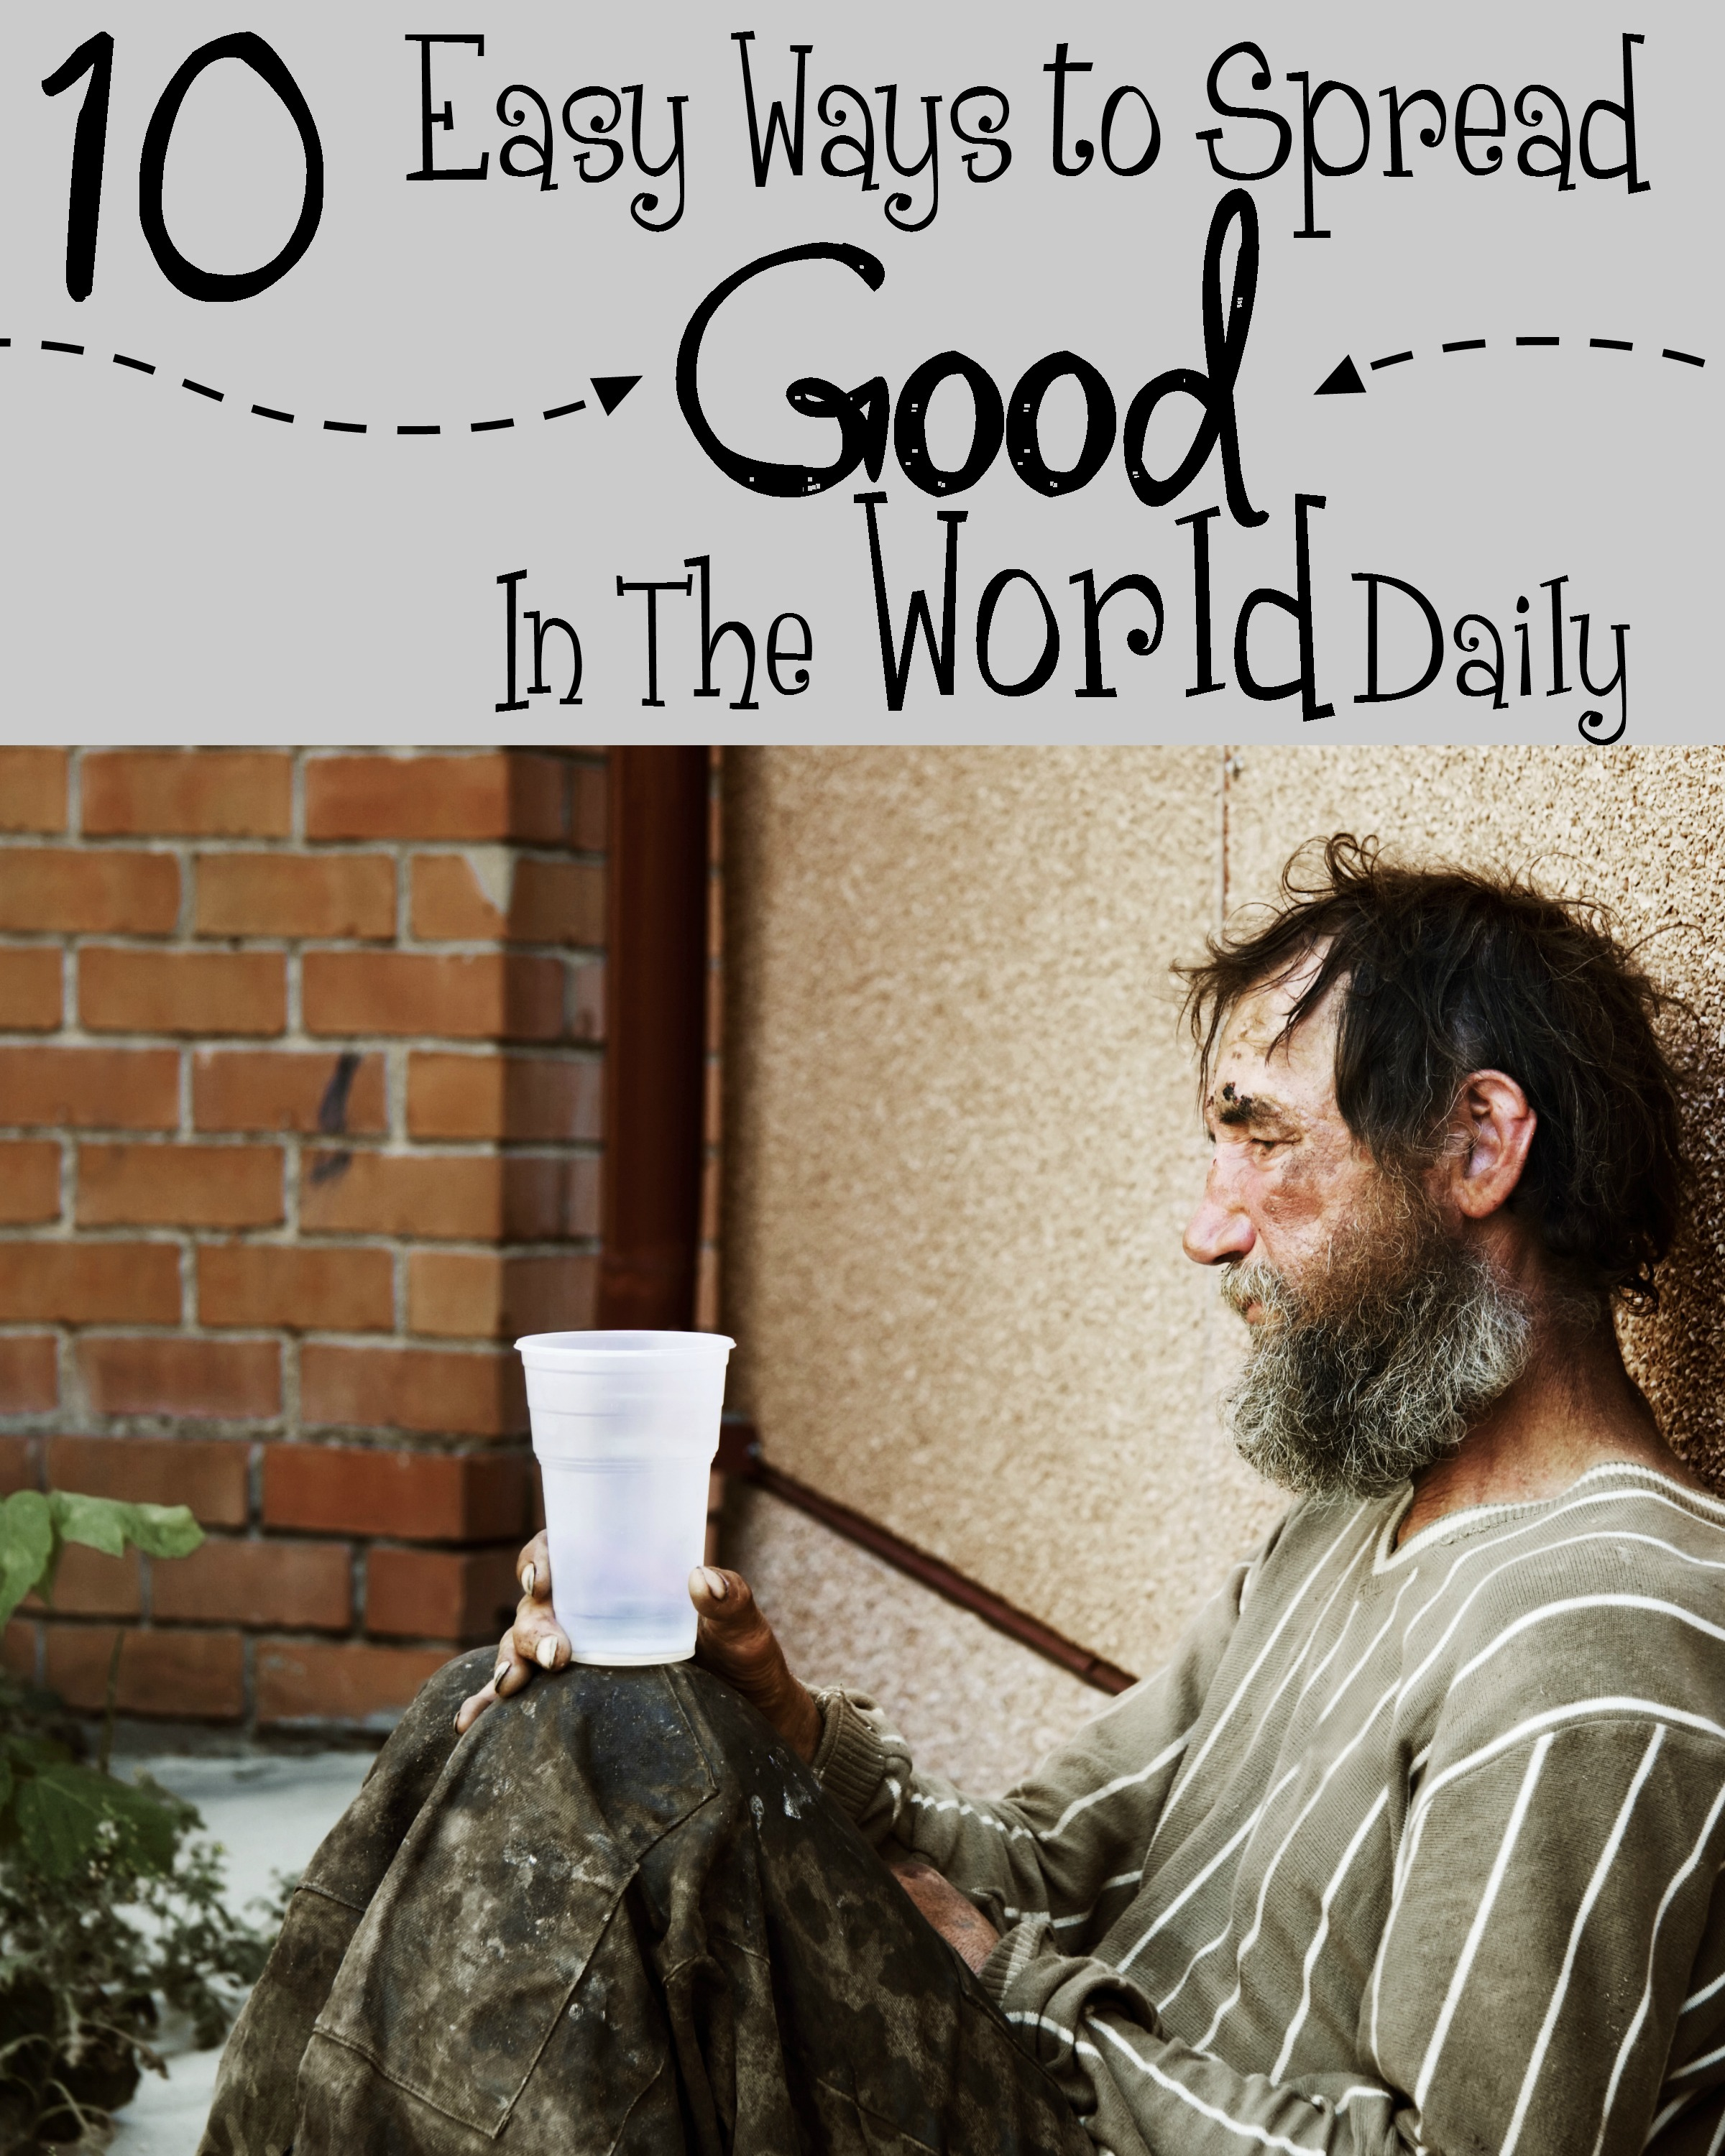 10 Easy Ways To Fix Your Door In Under An Hour: 10 Easy Ways To Spread Good In The World Daily